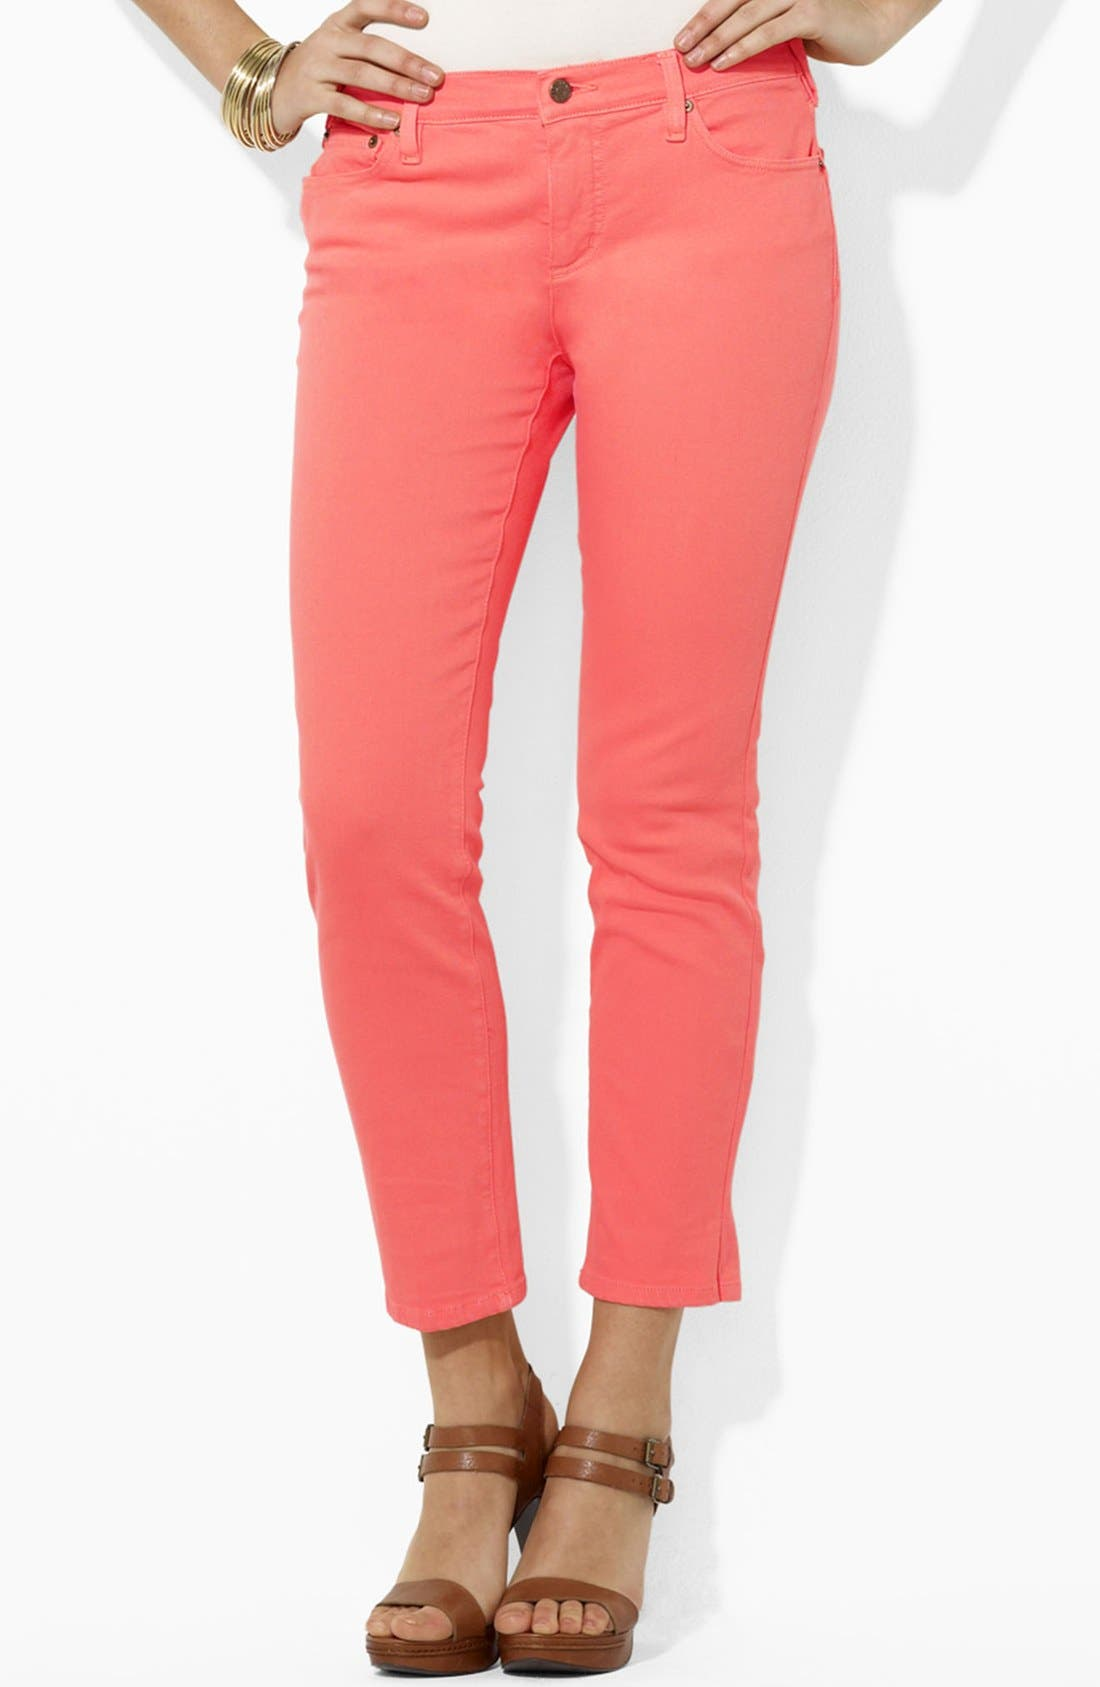 Alternate Image 1 Selected - Lauren Ralph Lauren Slimming Straight Leg Ankle Pants (Petite) (Online Only)